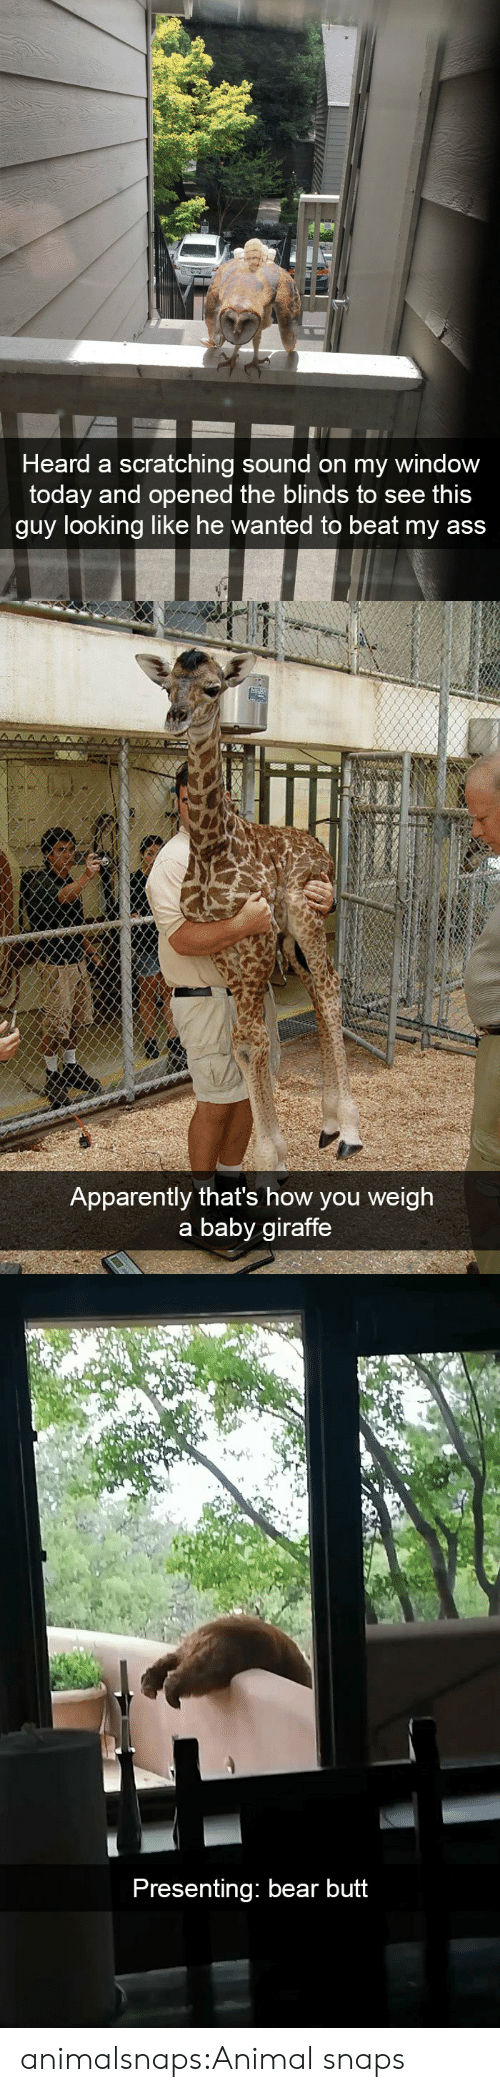 Apparently, Ass, and Butt: Heard a scratching sound on my window  today and opened the blinds to see thi:s  guy looking like he wanted to beat my ass   Apparently that's how you weigh  a baby giraffe   Presenting: bear butt animalsnaps:Animal snaps